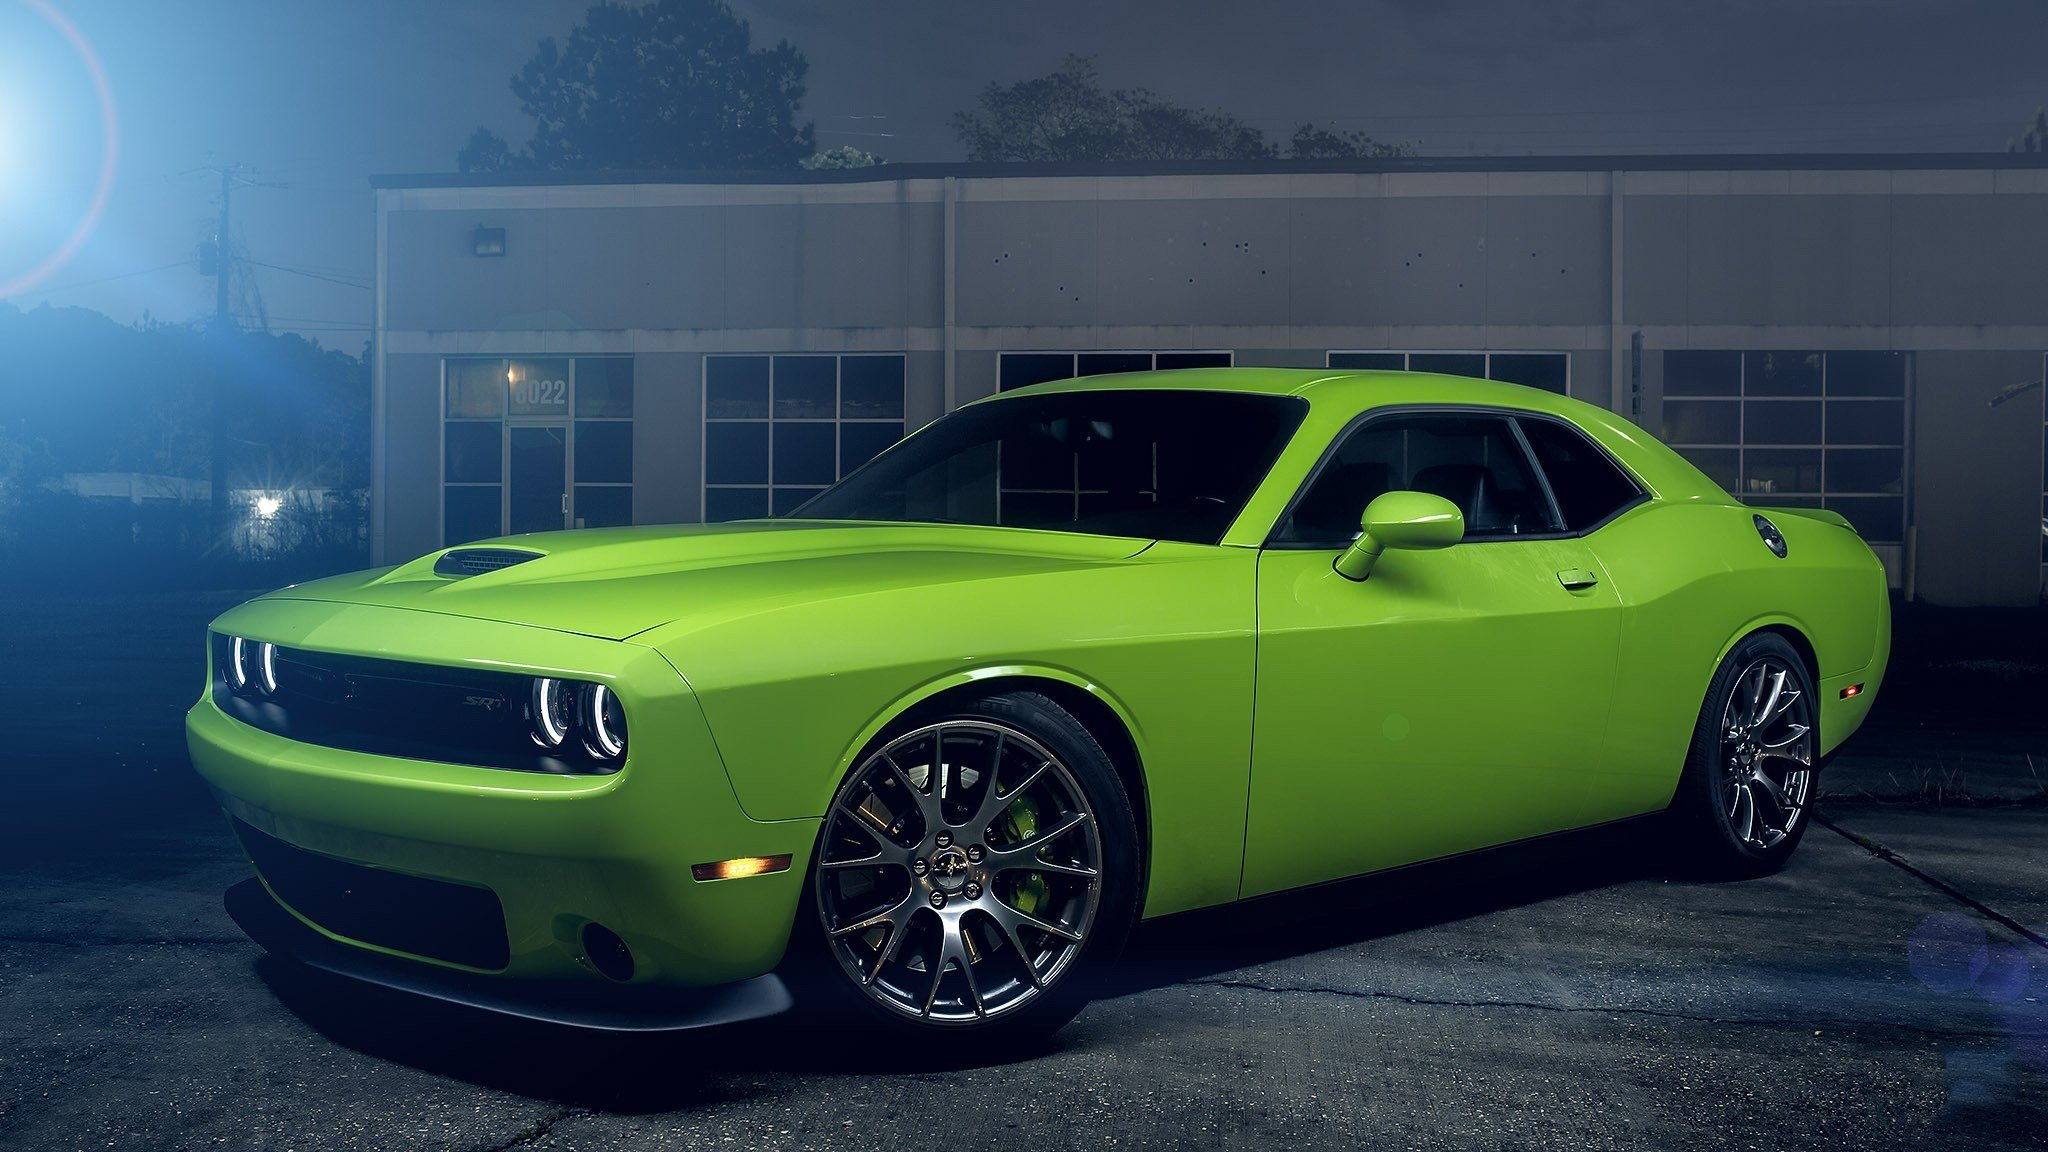 New Car Dodge Challenger Srt Wallpapers Hd Desktop And On This Month